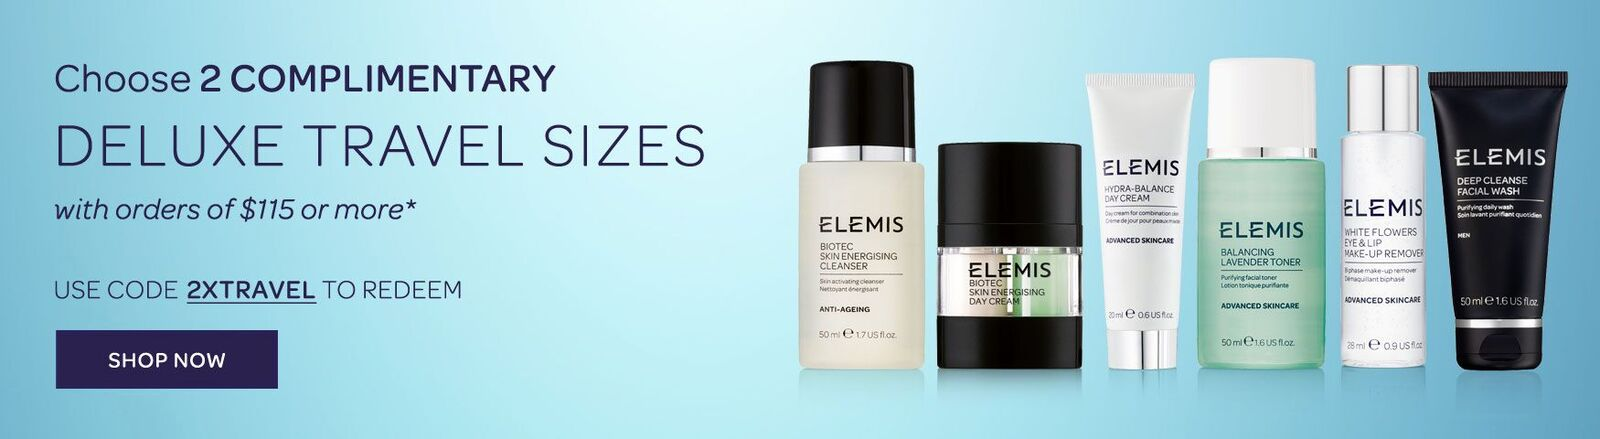 Receive 2 complimentary deluxe travel sizes on orders of $115 or more